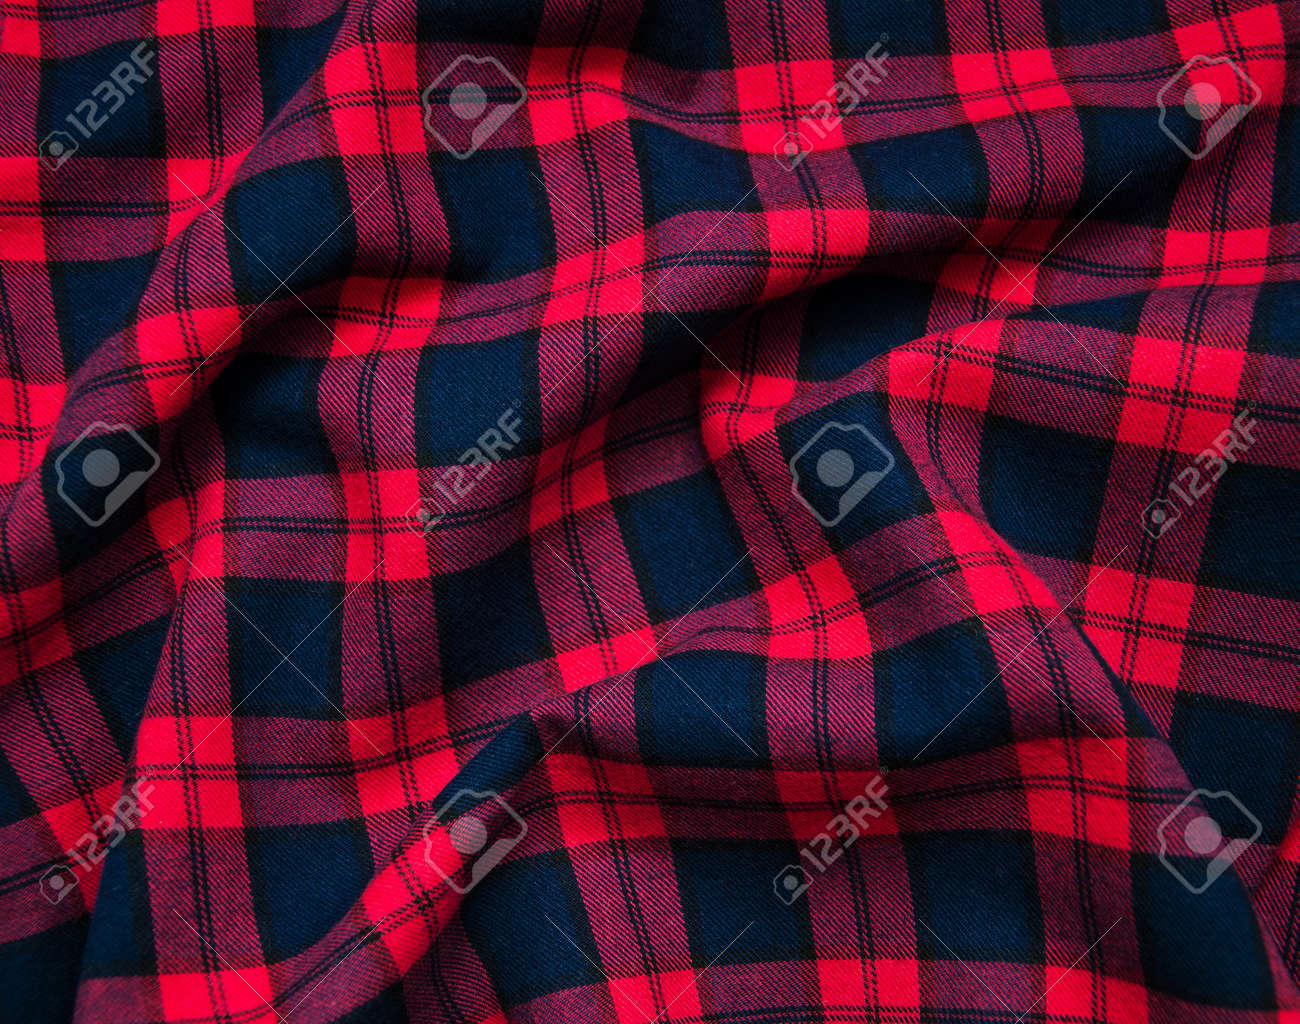 Texture Of Red Black Checkered Fabric Pattern Background Stock Photo